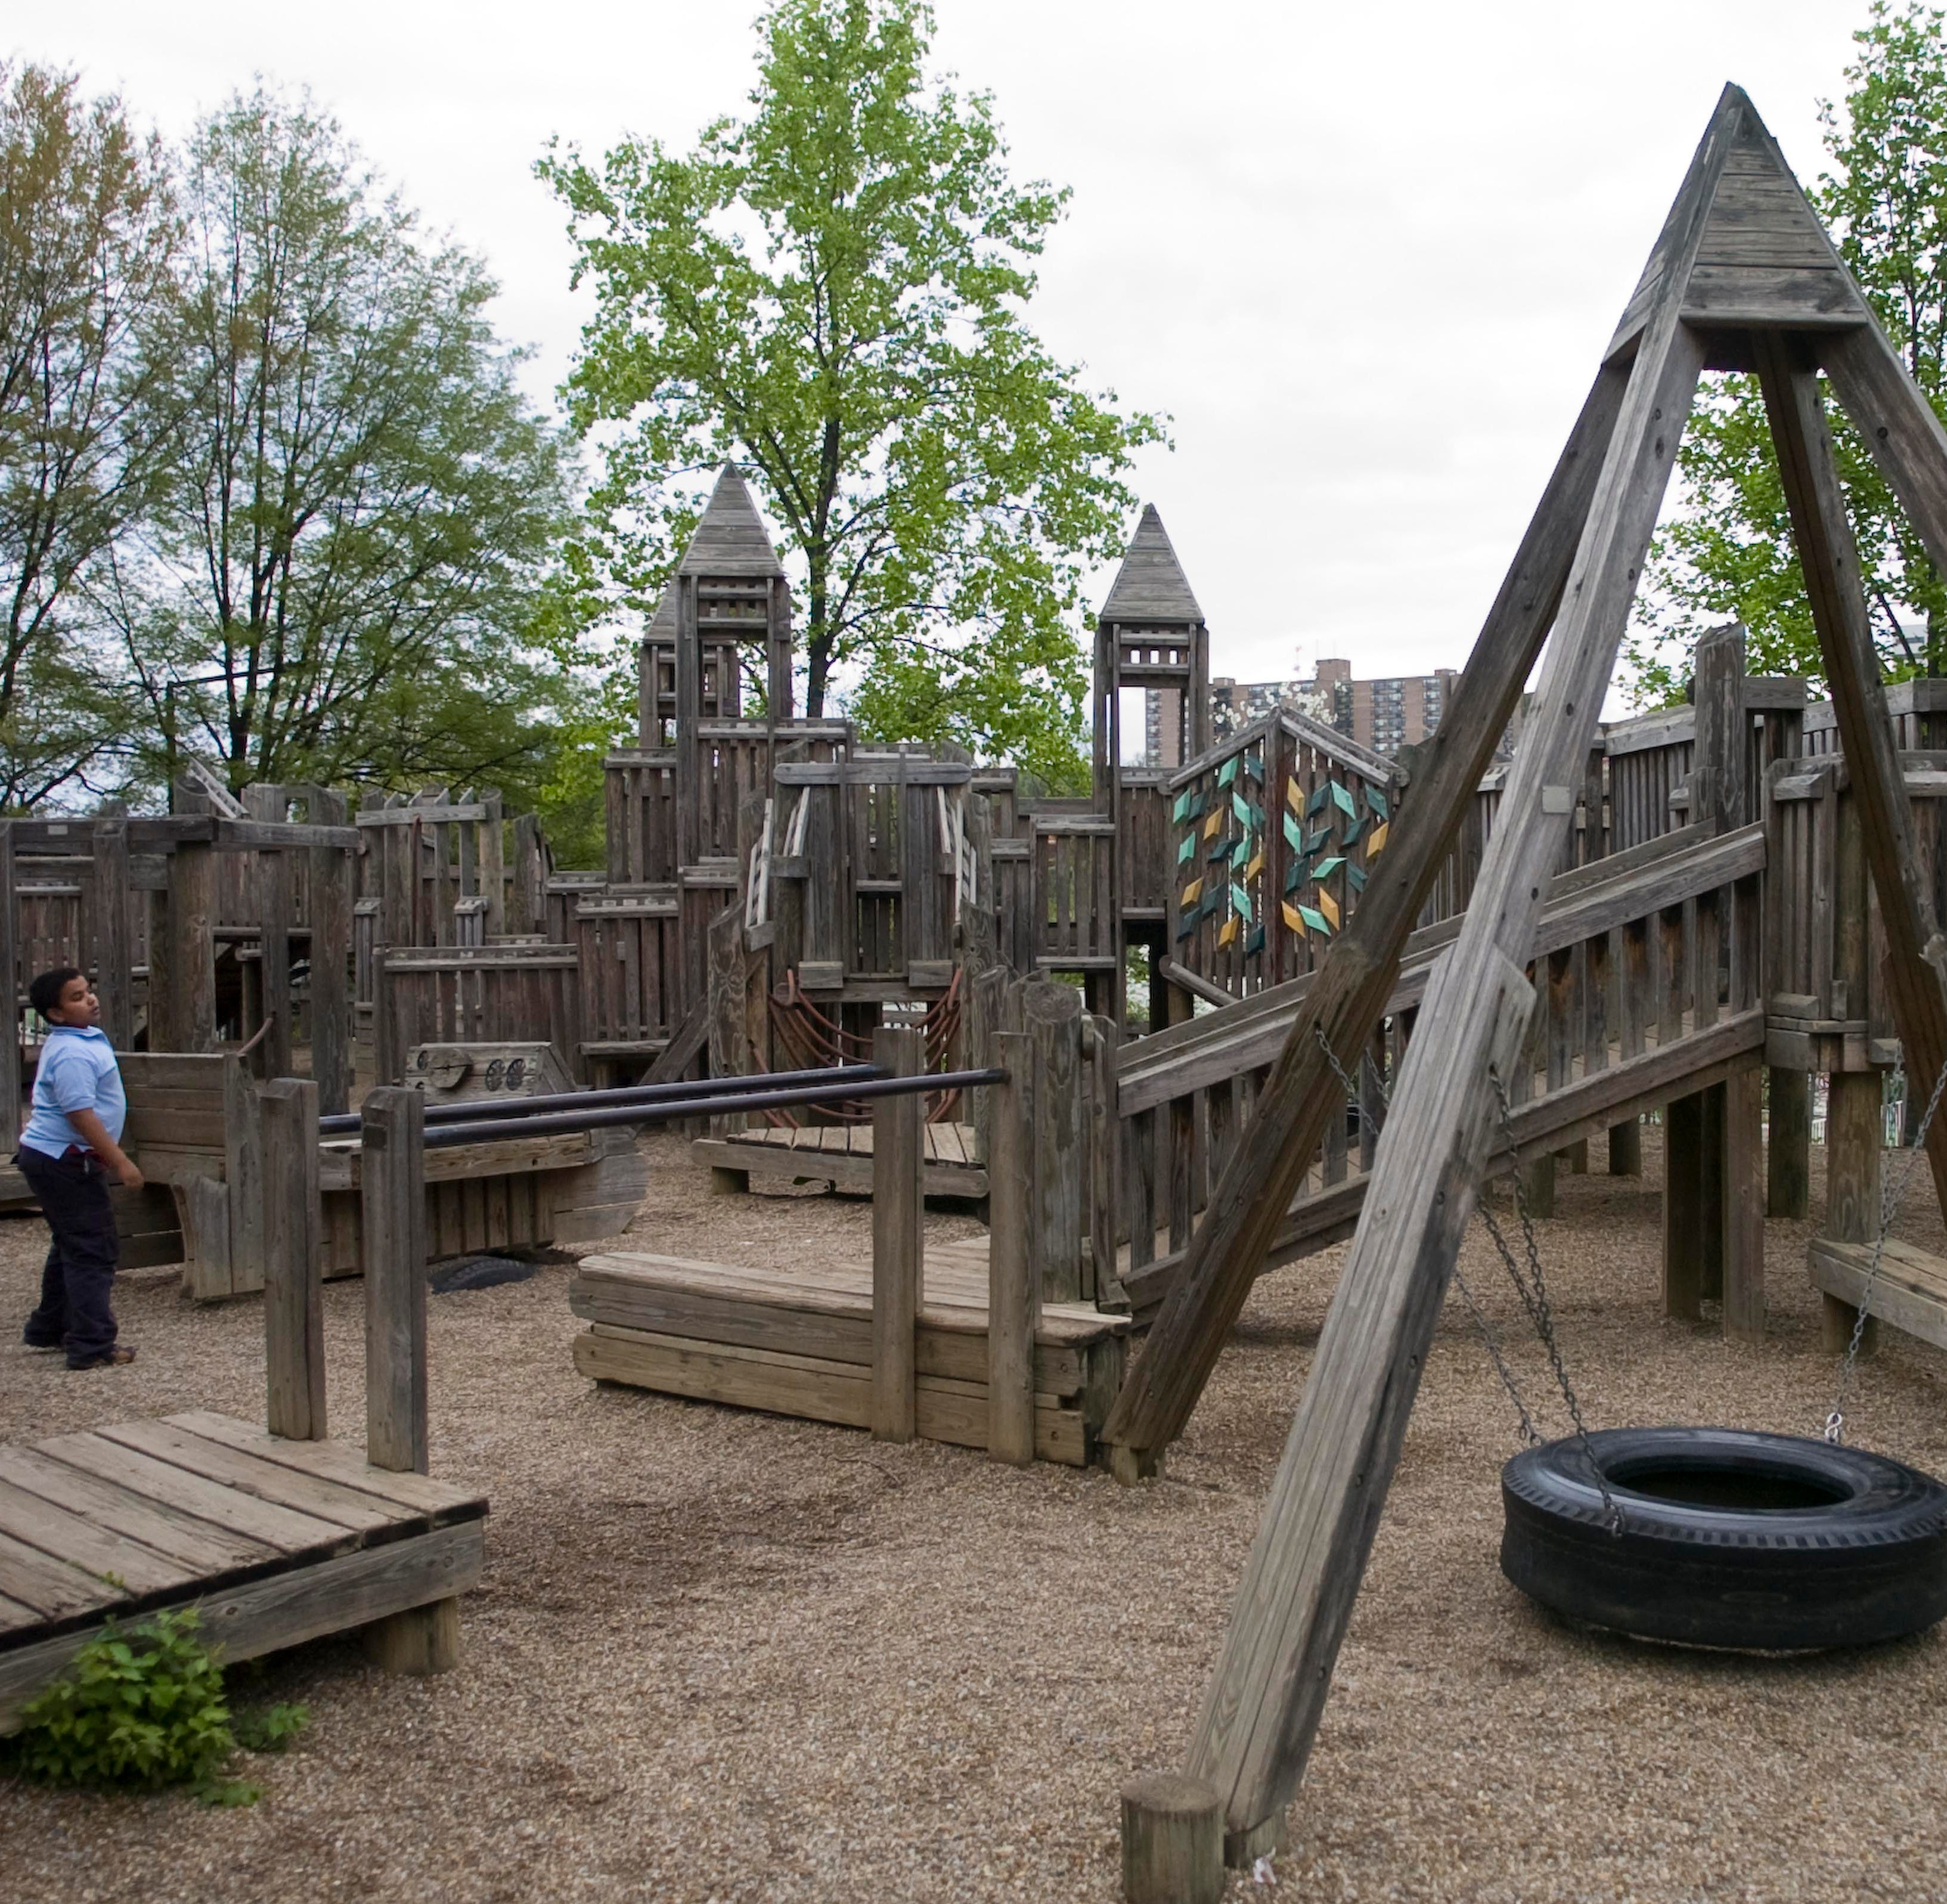 Say goodbye to Knoxville's original Fort Kid — this will be its last summer